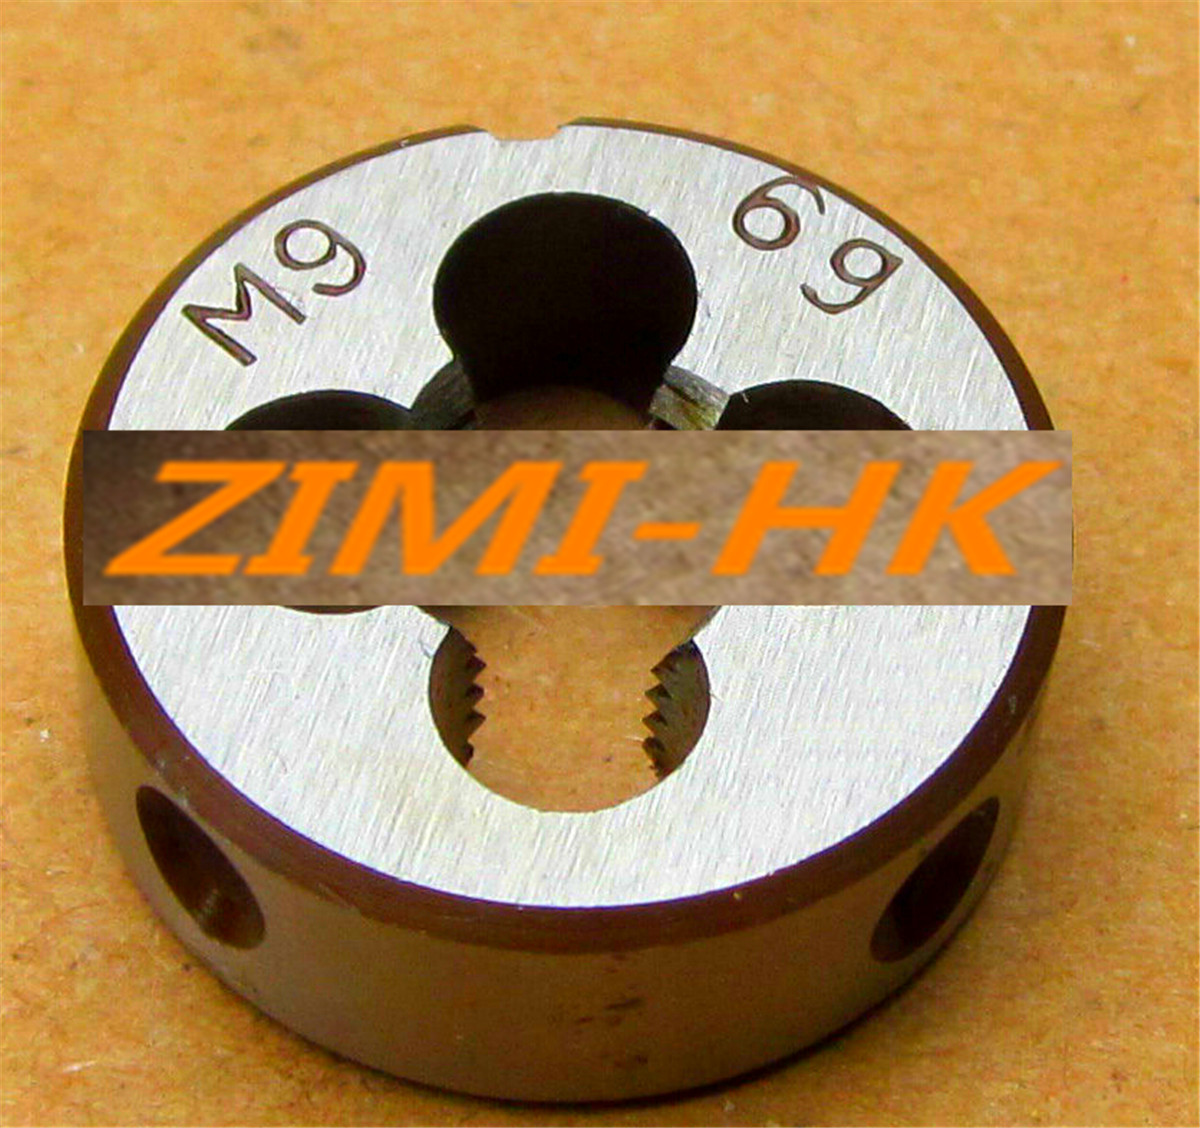 1pcs 22mm x 1 Metric Right hand Die M22 x1.0mm Pitch The high quality